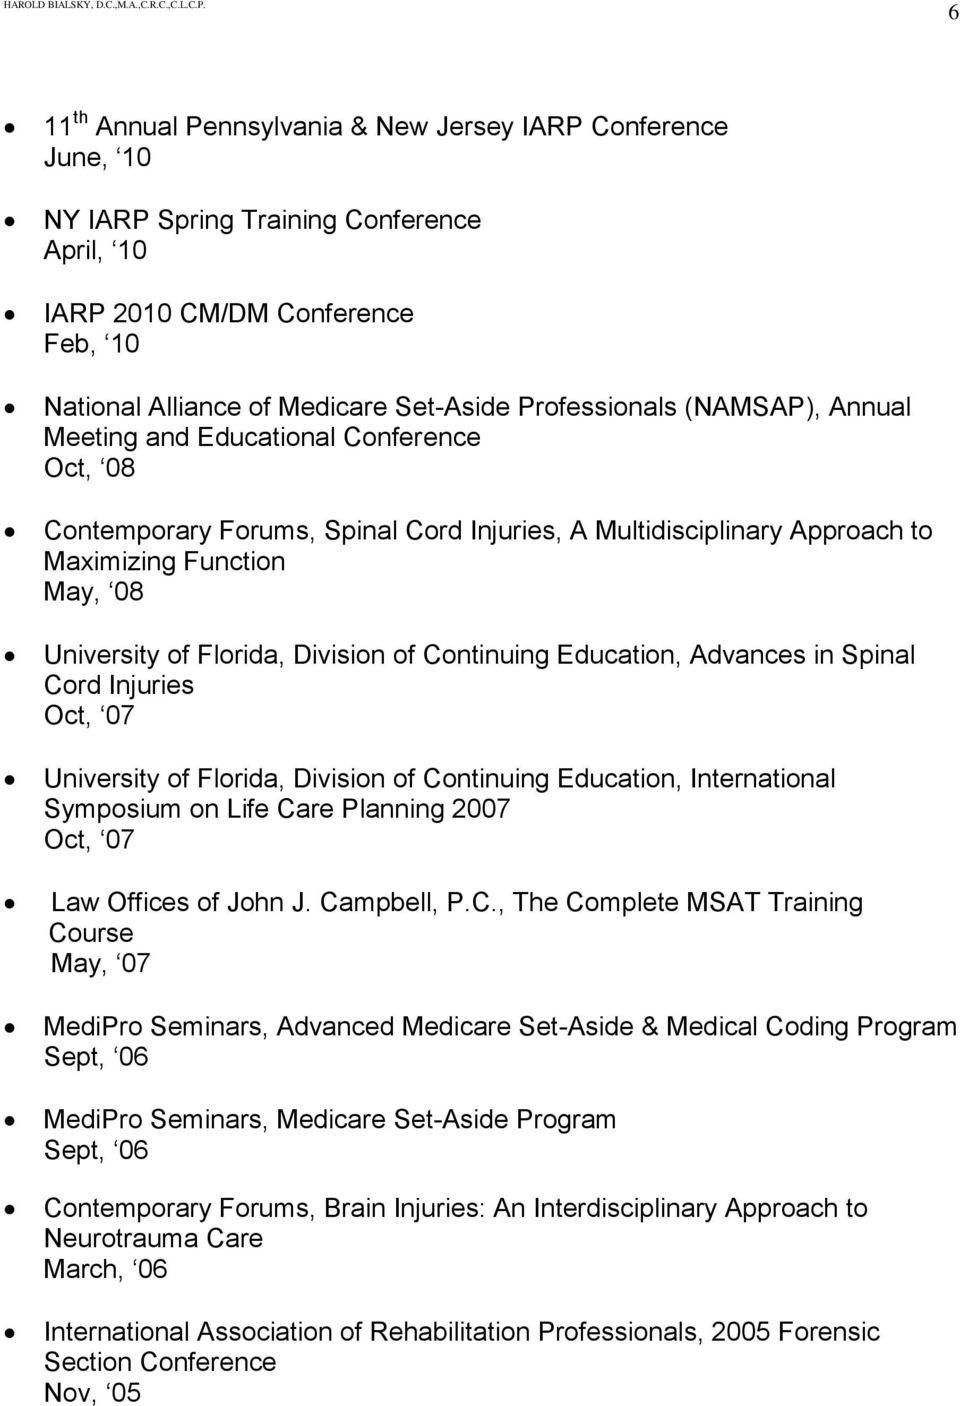 Continuing Education, Advances in Spinal Cord Injuries Oct, 07 University of Florida, Division of Continuing Education, International Symposium on Life Care Planning 2007 Oct, 07 Law Offices of John